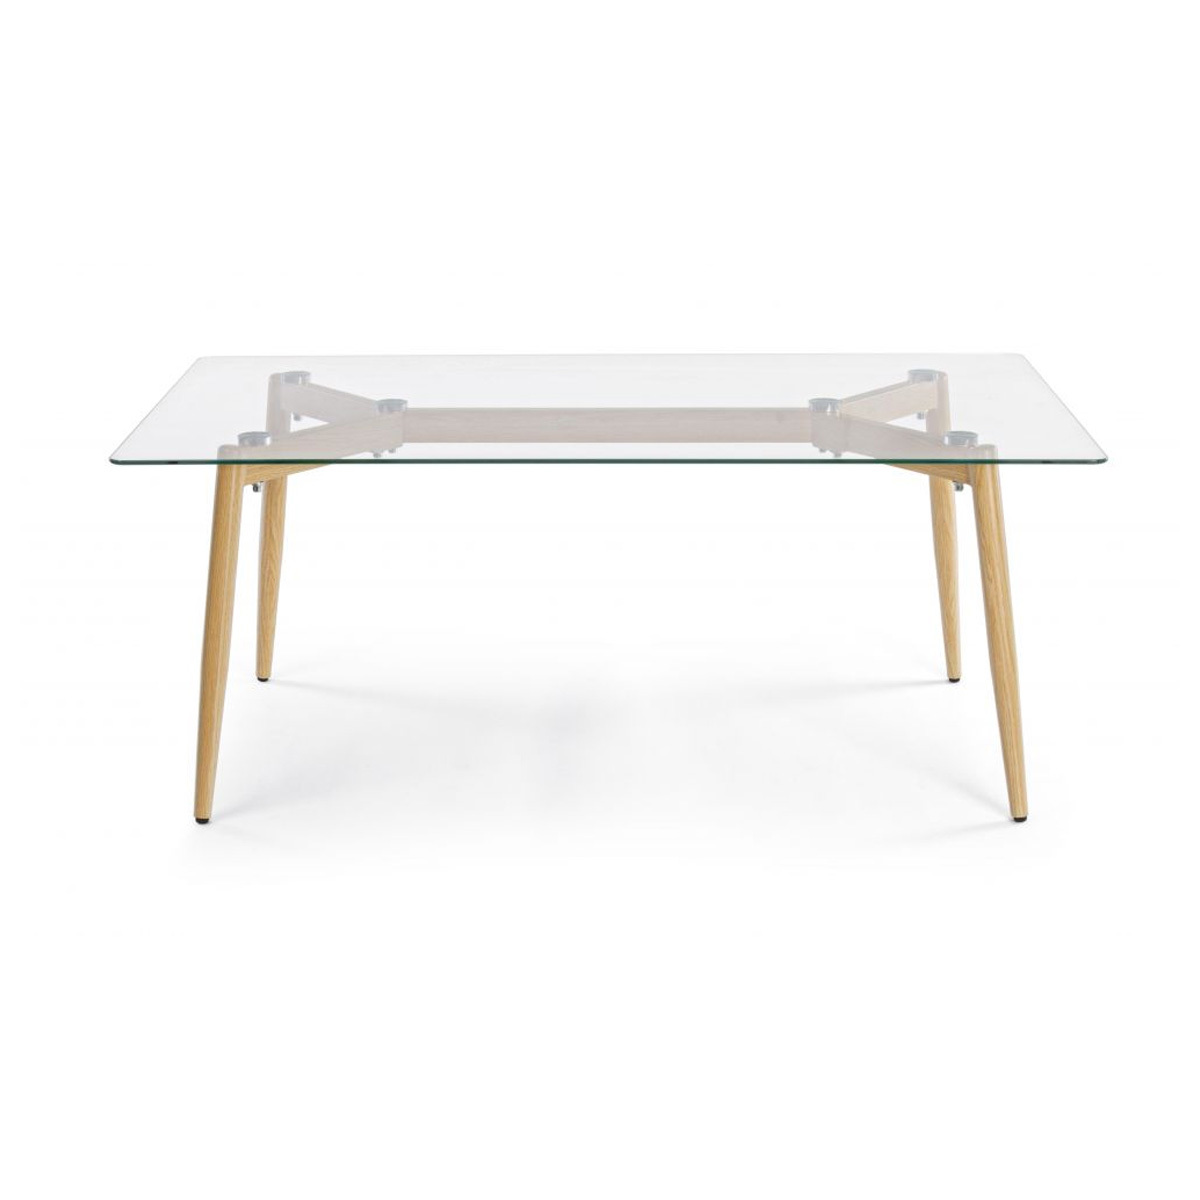 Photos 1: Bizzotto Table in metal and glass l. 110 x 60 0730796